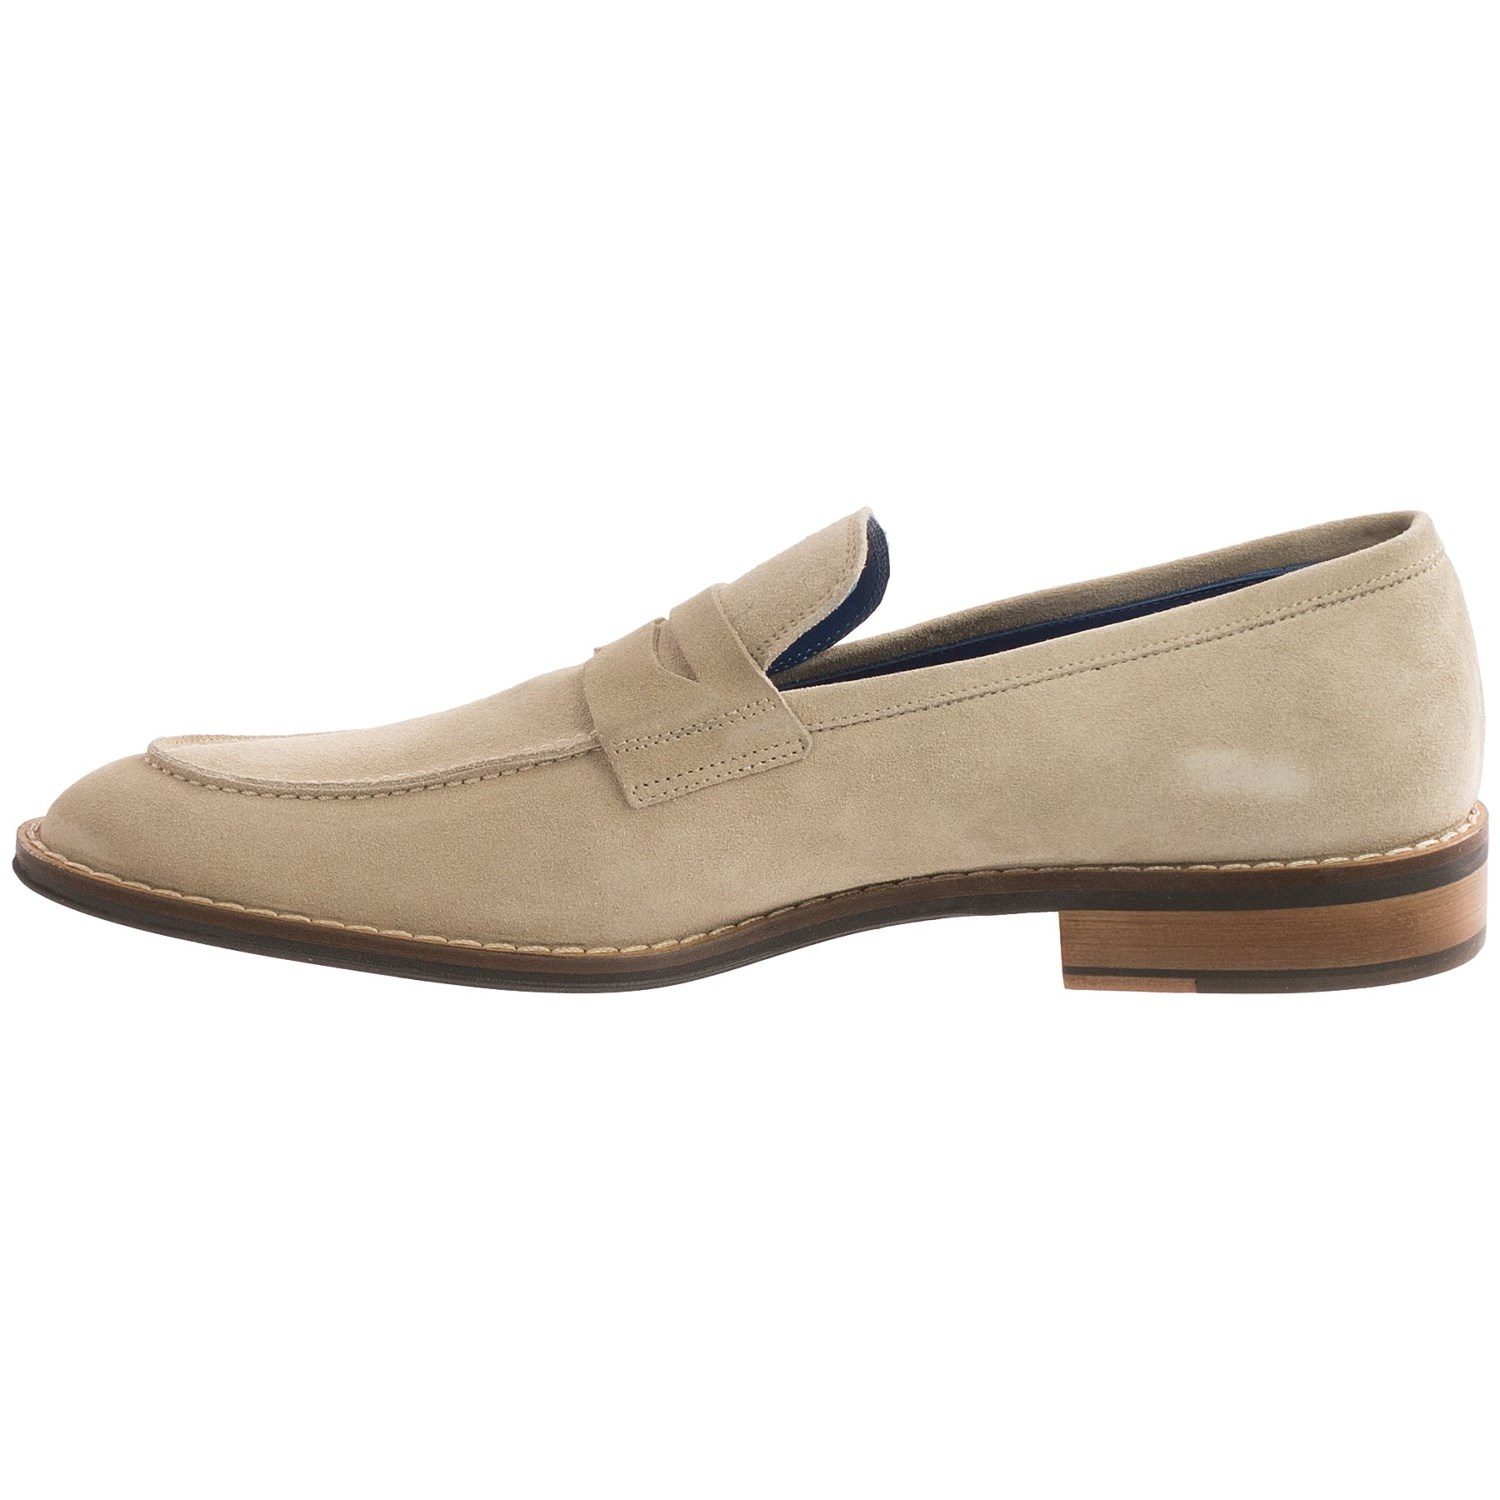 Discount Mens Loafers Sale: Save Up to 60% Off! Shop techclux.gq's huge selection of Cheap Mens Loafers - Over styles available. FREE Shipping & Exchanges, and a % price guarantee!